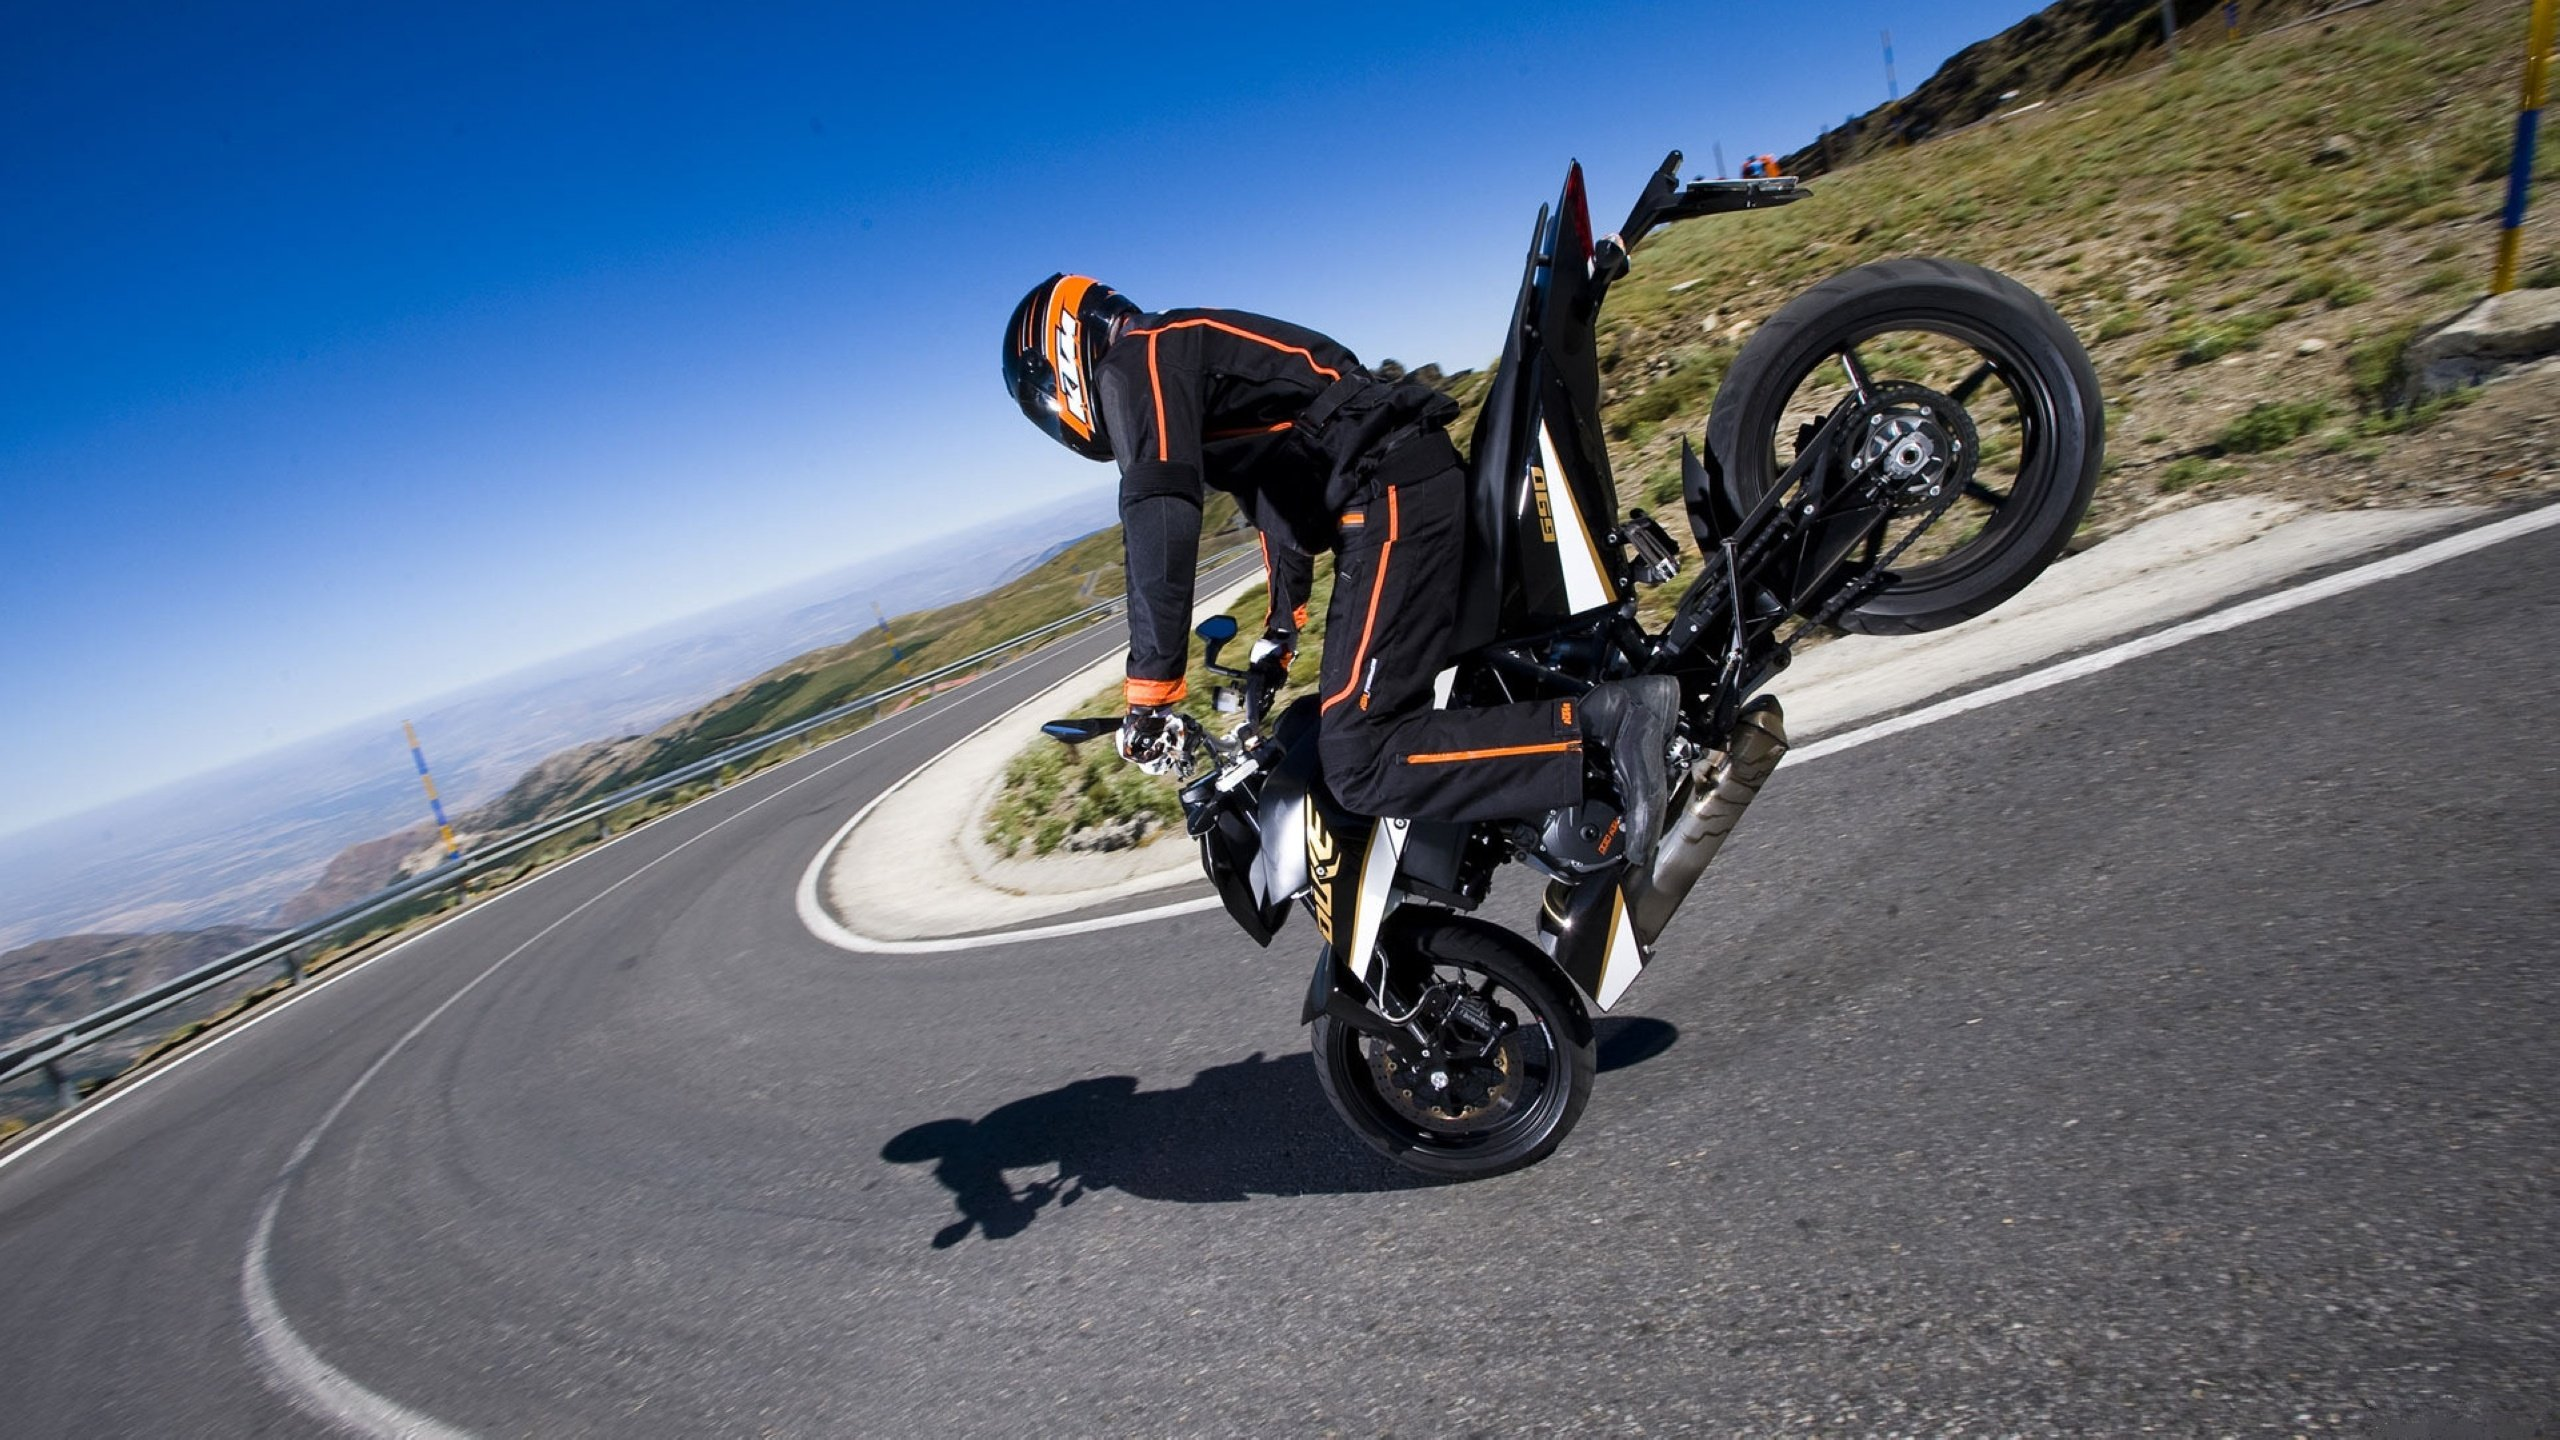 KTM 690 Duke Stoppie Bikes HD Wallpapers Car Wallpapers 2560x1440